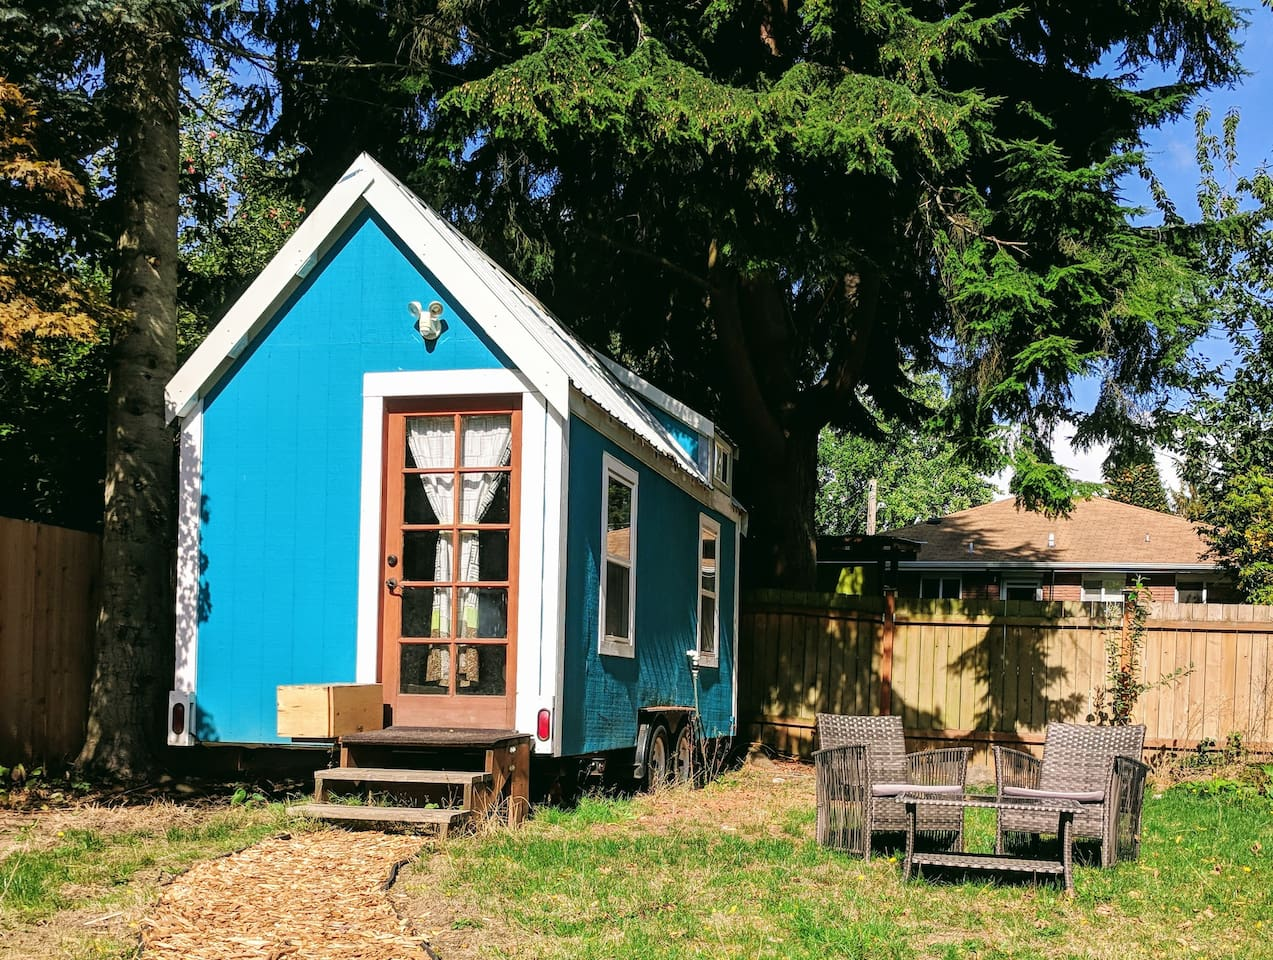 The tiny house is nestled into the backyard of an 8,000 square foot lot. It's a quiet retreat from the city's hustle and bustle!